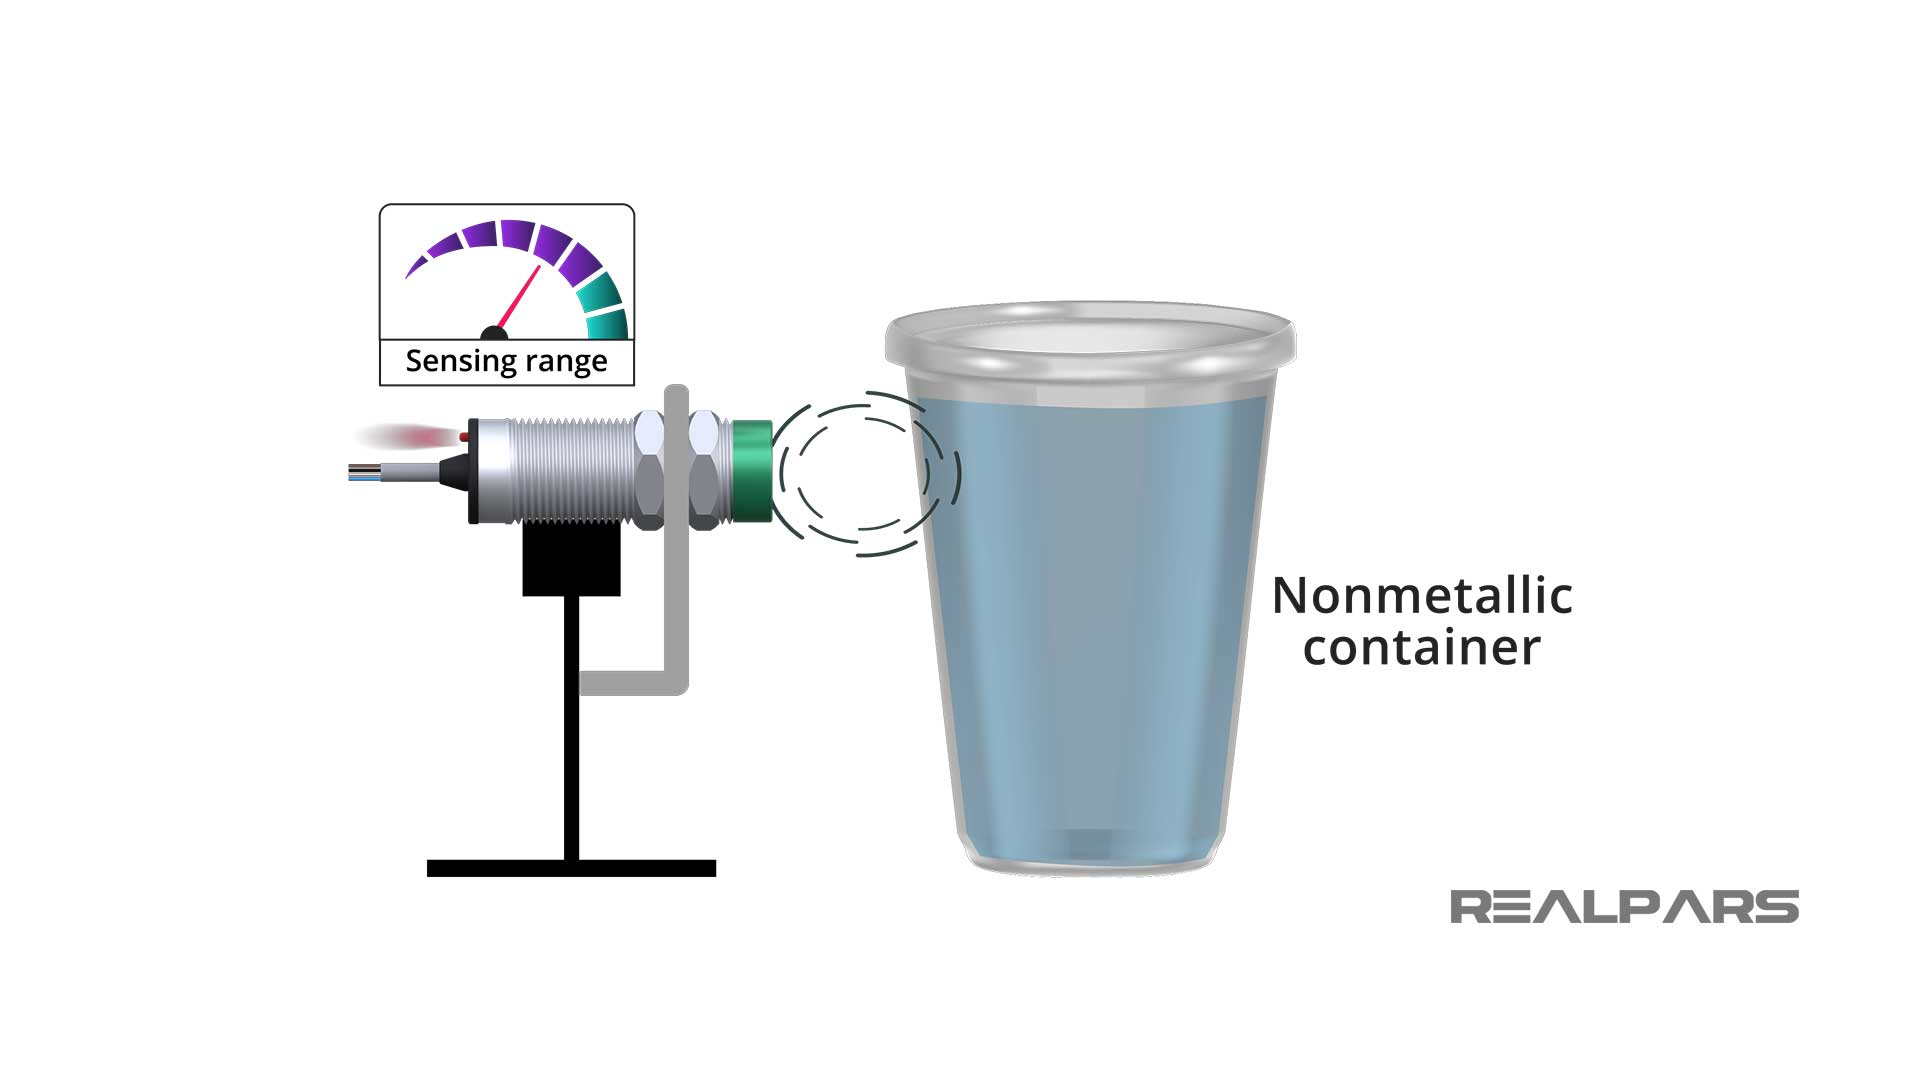 Detecting-material-inside-a-nonmetallic-container